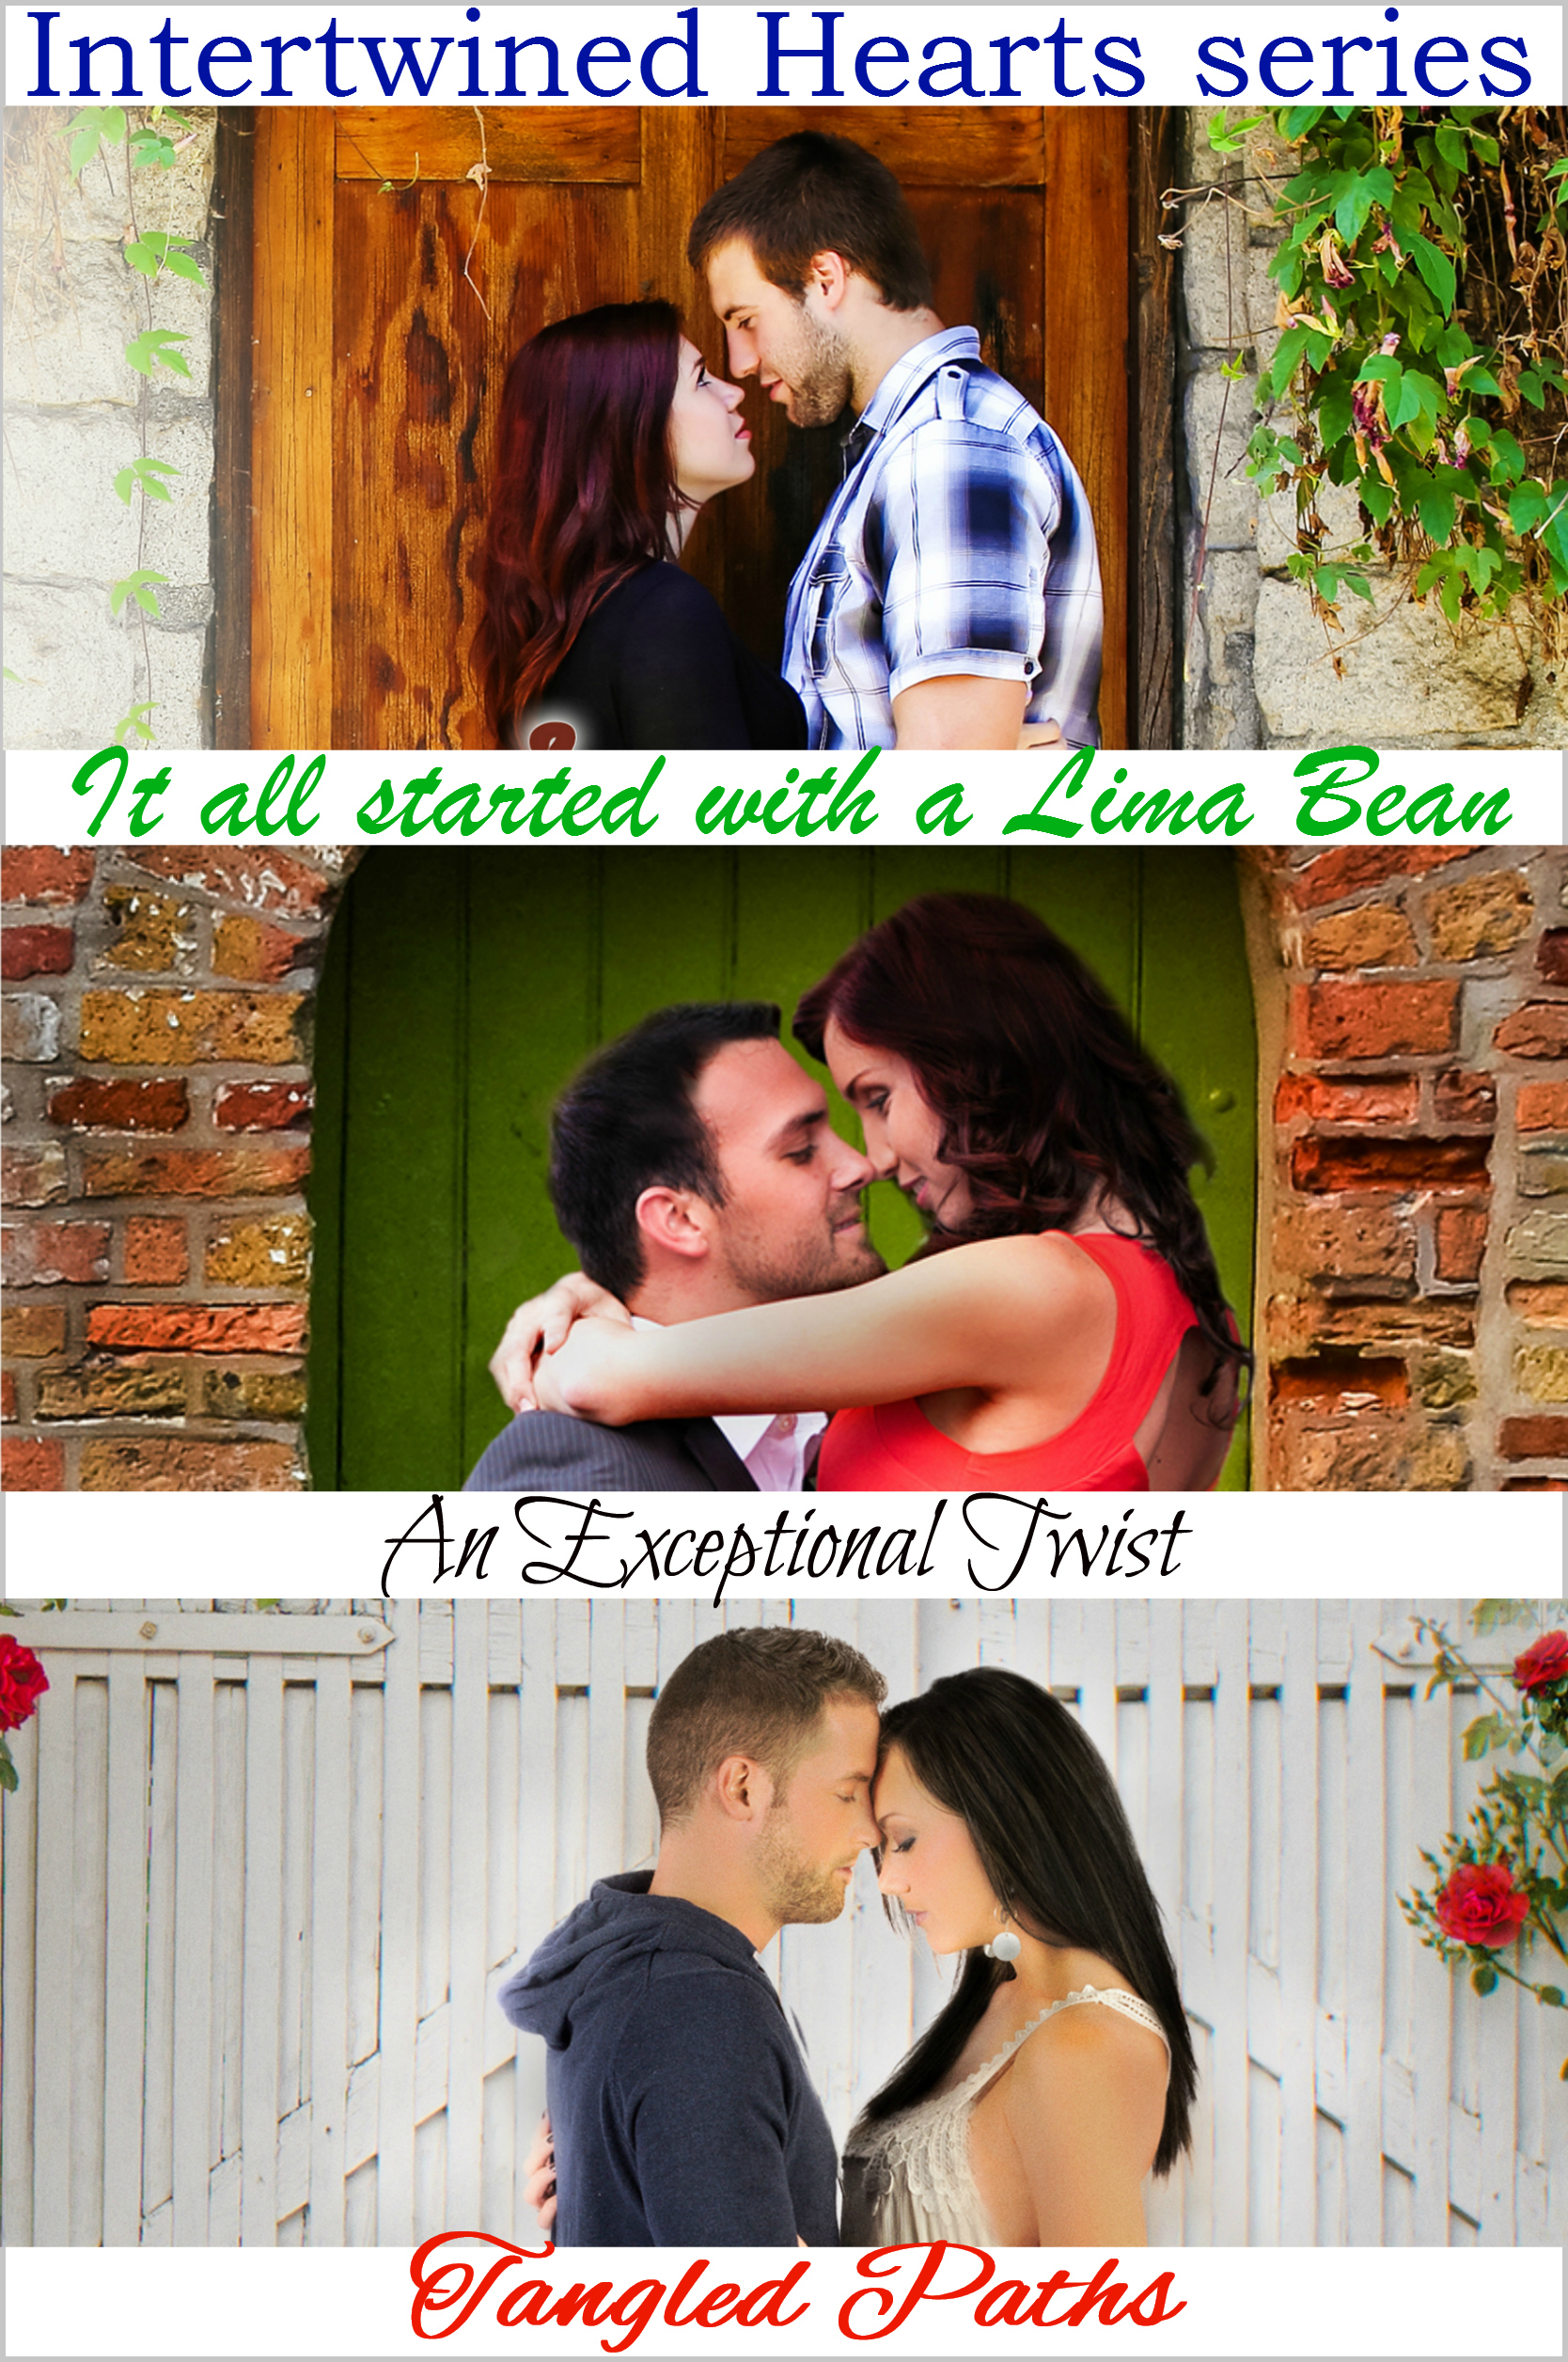 Intertwined Hearts 3 ebook box set Kimi Flores